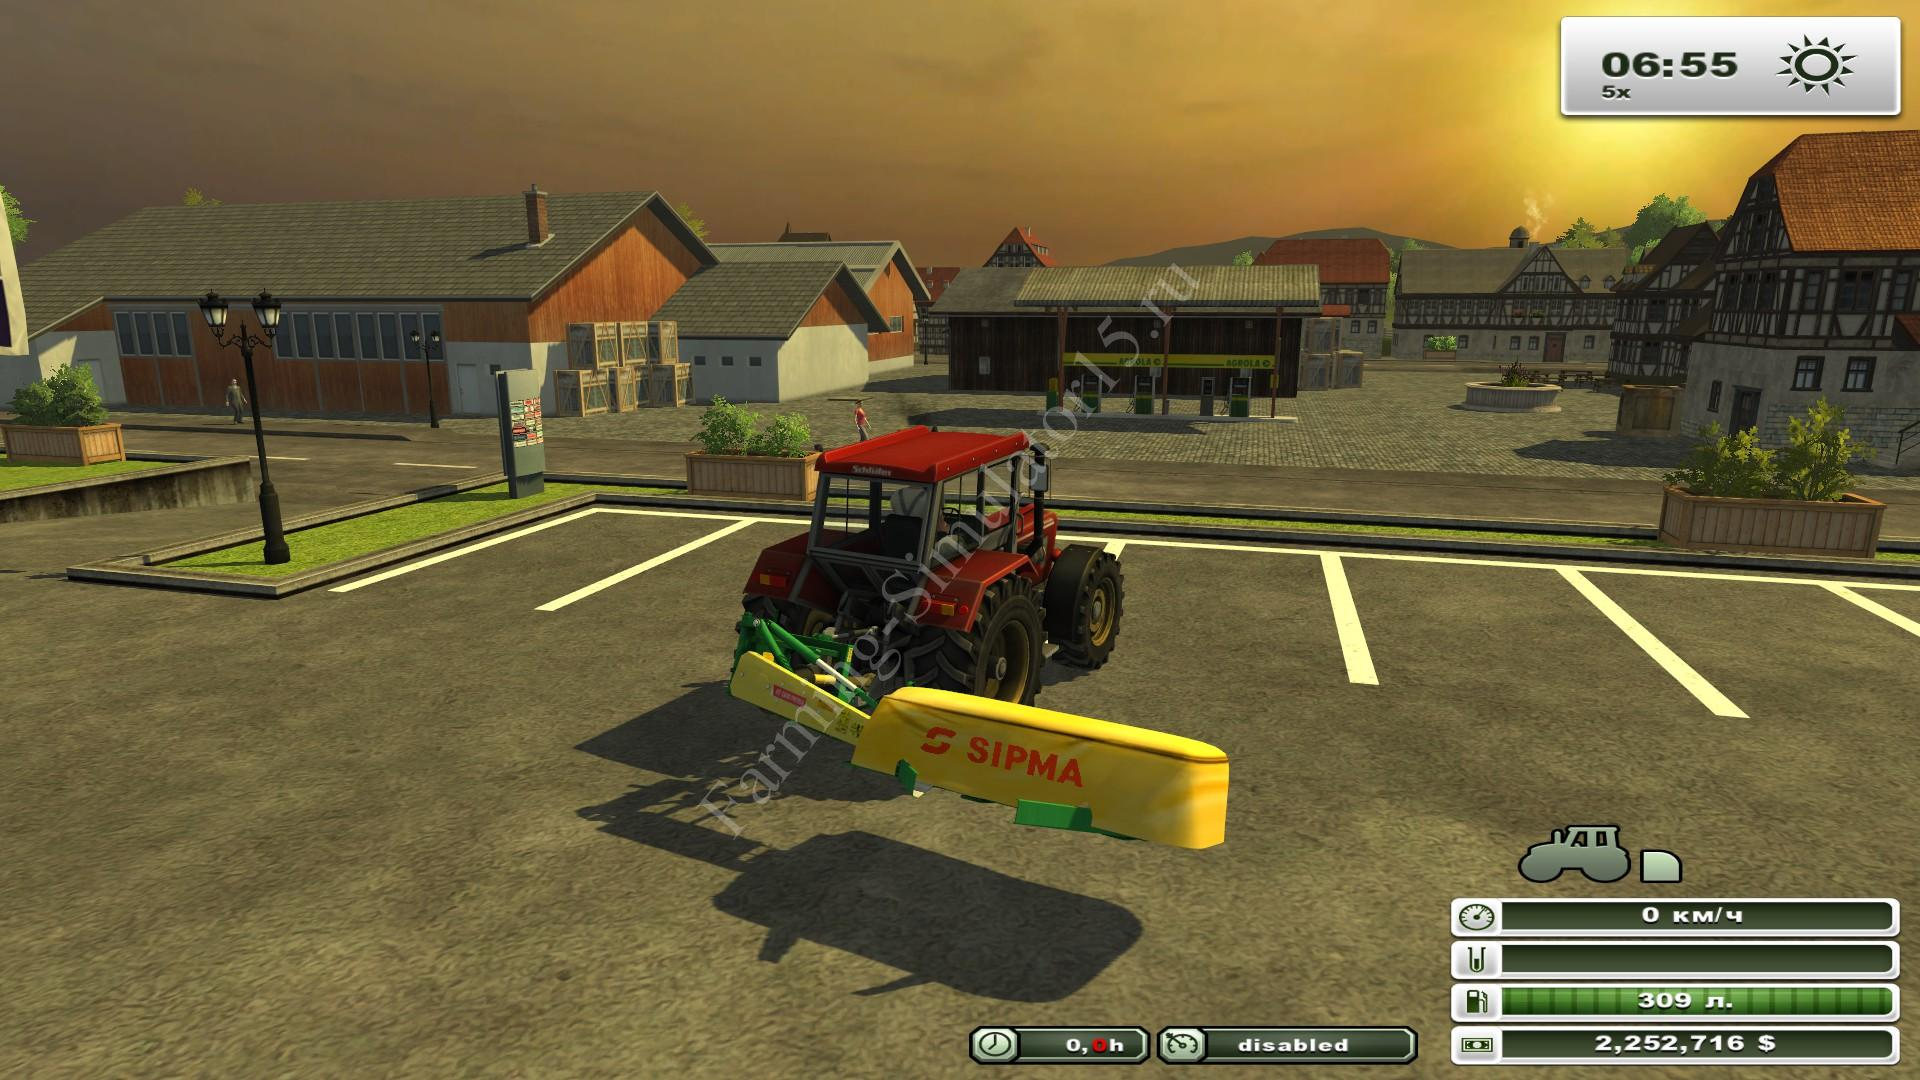 Sipma Preria 1600 v 1.0 - мод More Realistic газонокосилка Farming Simulator 13, Farming Simulator 2013